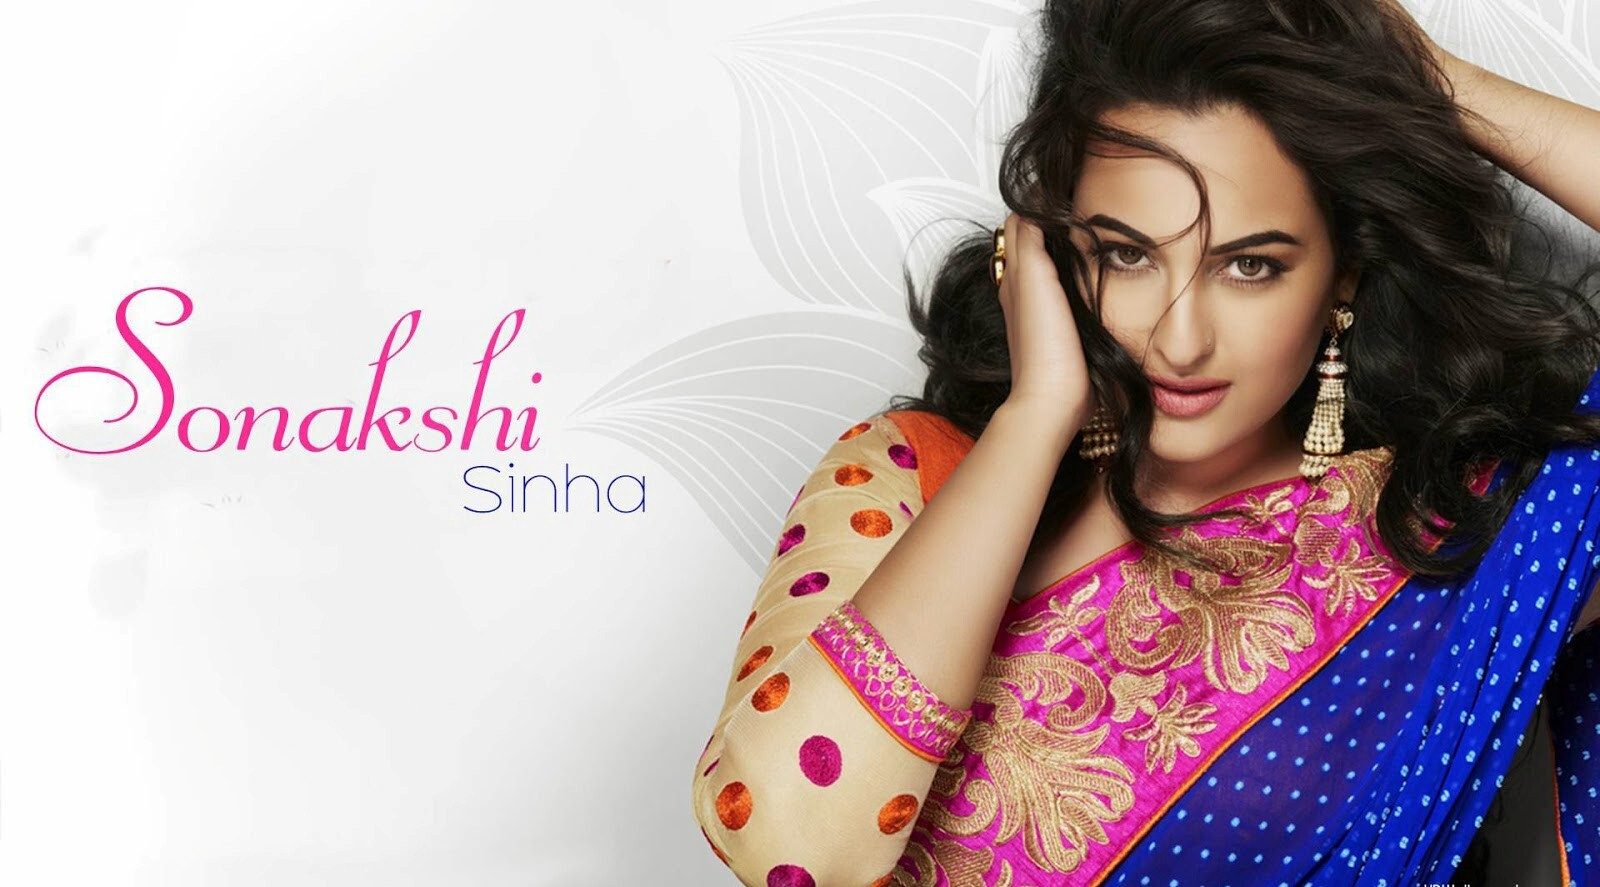 Hot And Sexy Look Of Sonakshi Sinha In Saree Hd Wallpapers Hd Wallpapers